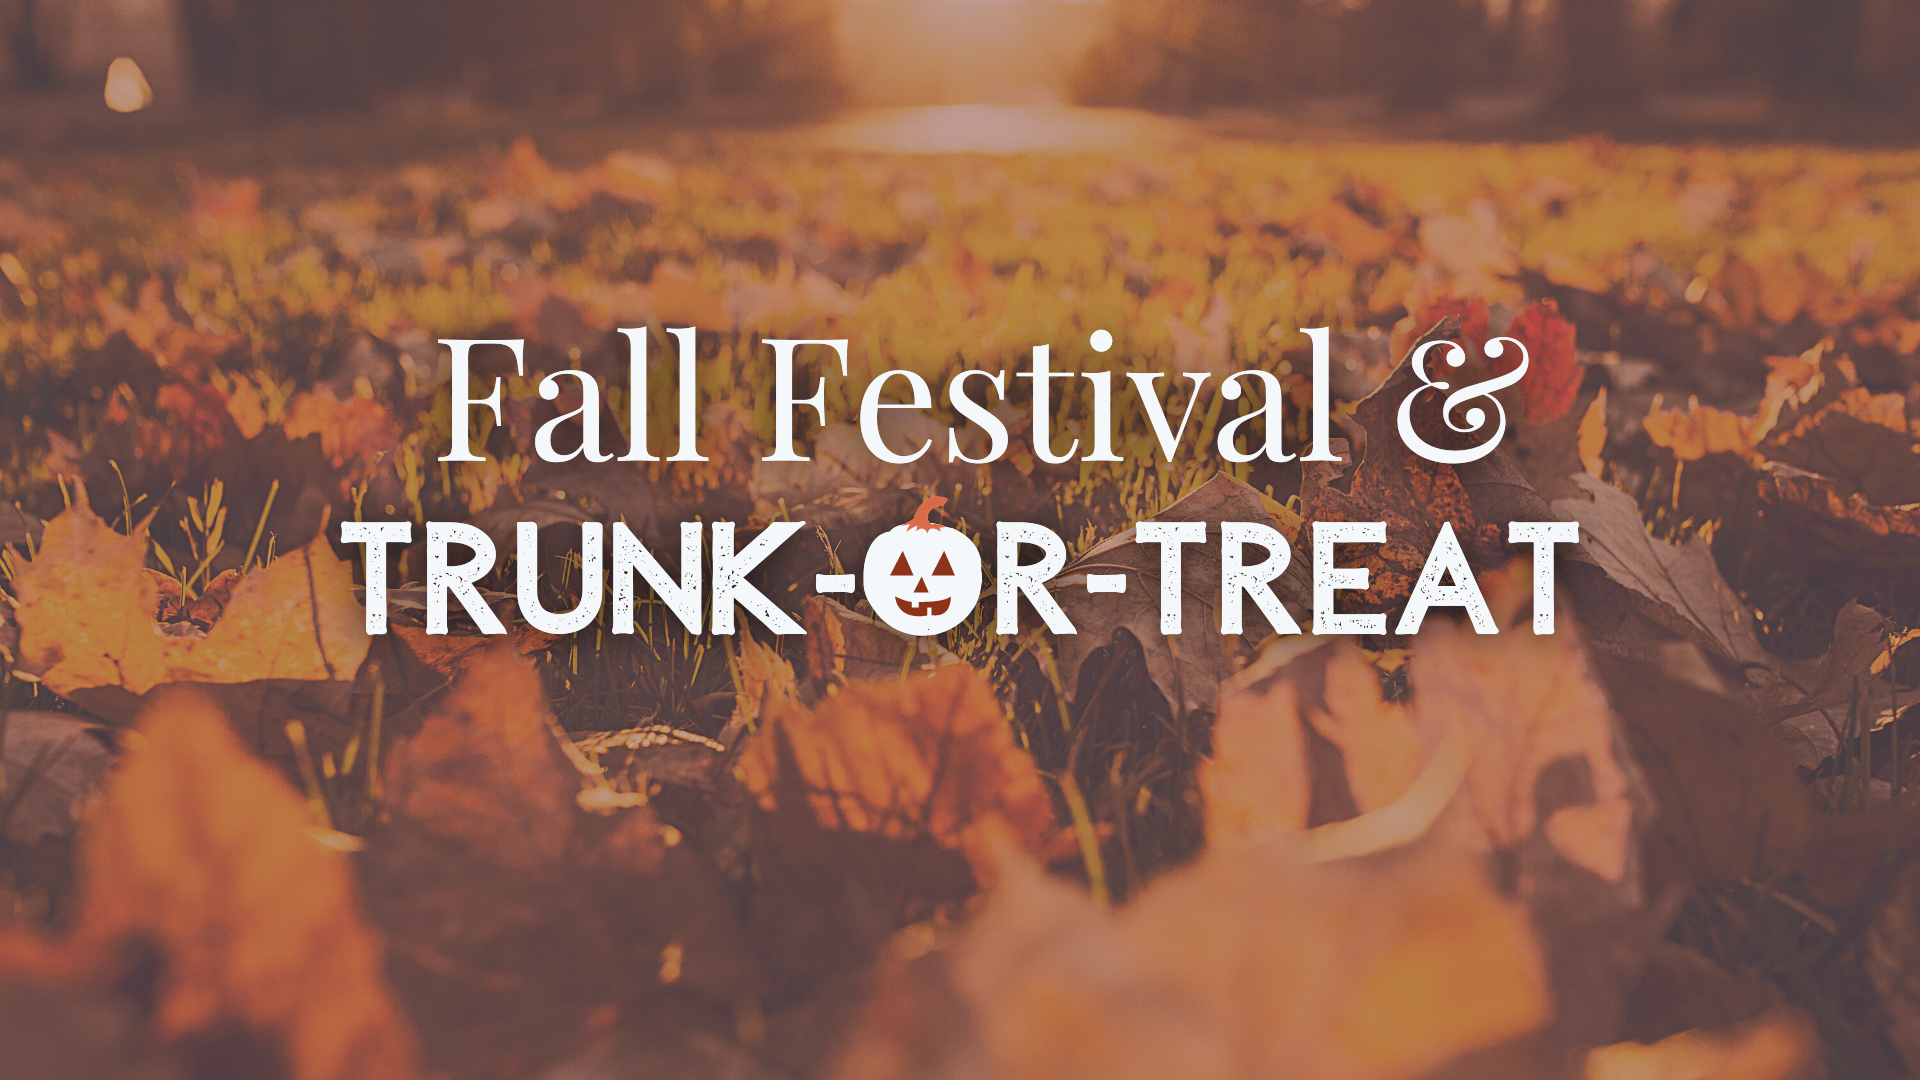 Fall Festival & Trunk-or-Treat: Oct. 16th